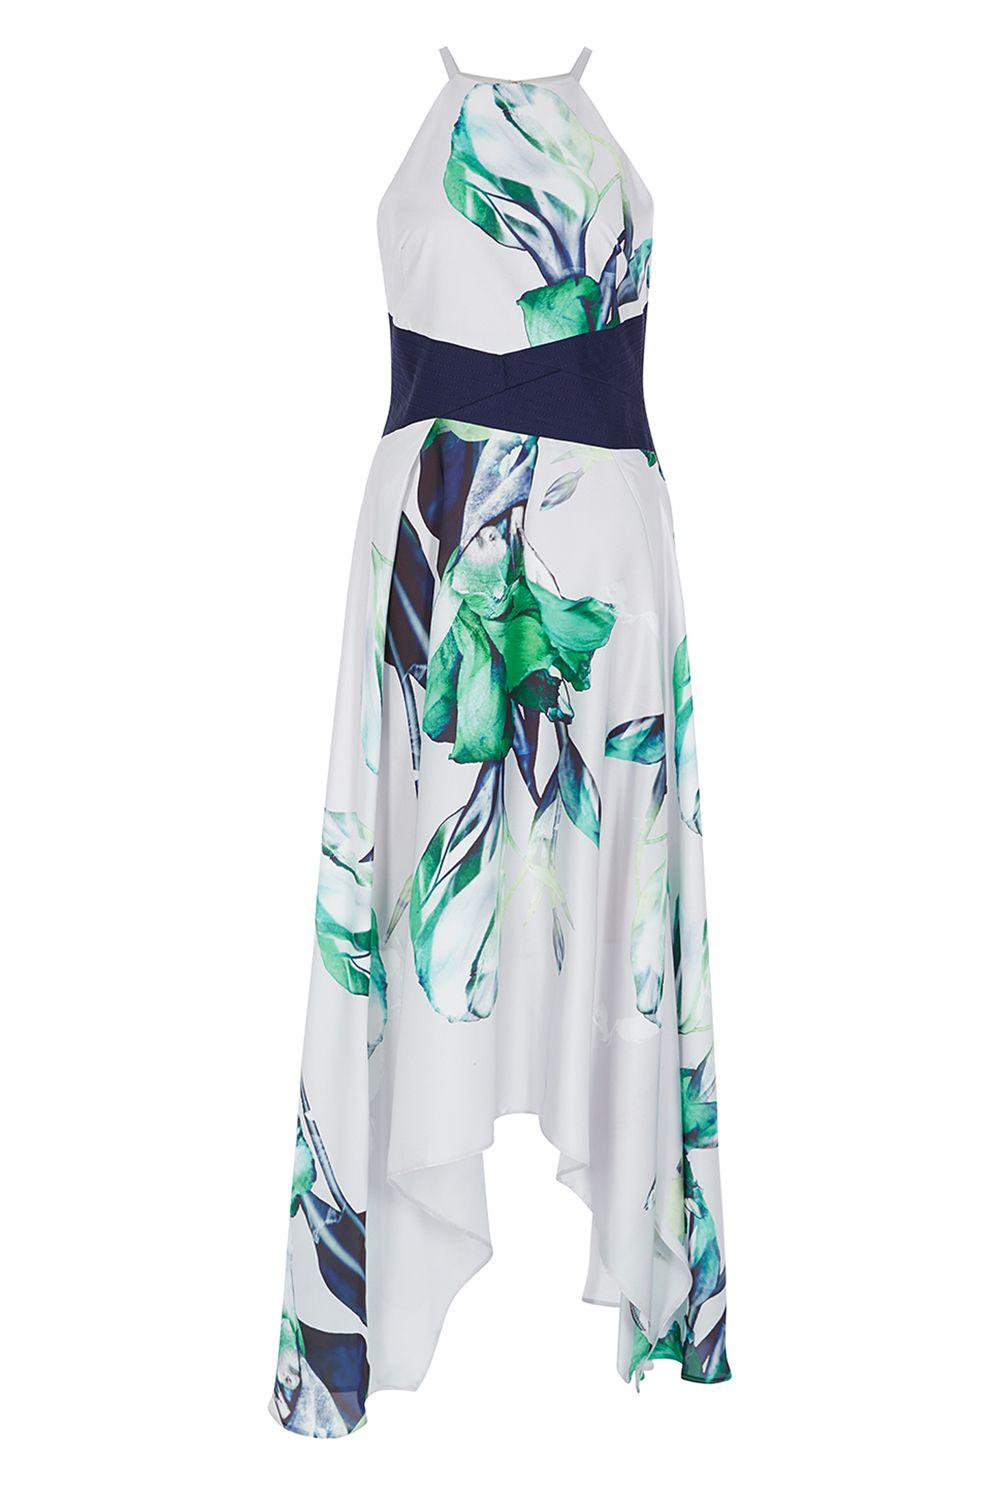 Coast Audrey Print Midi Dress, Multi-Coloured